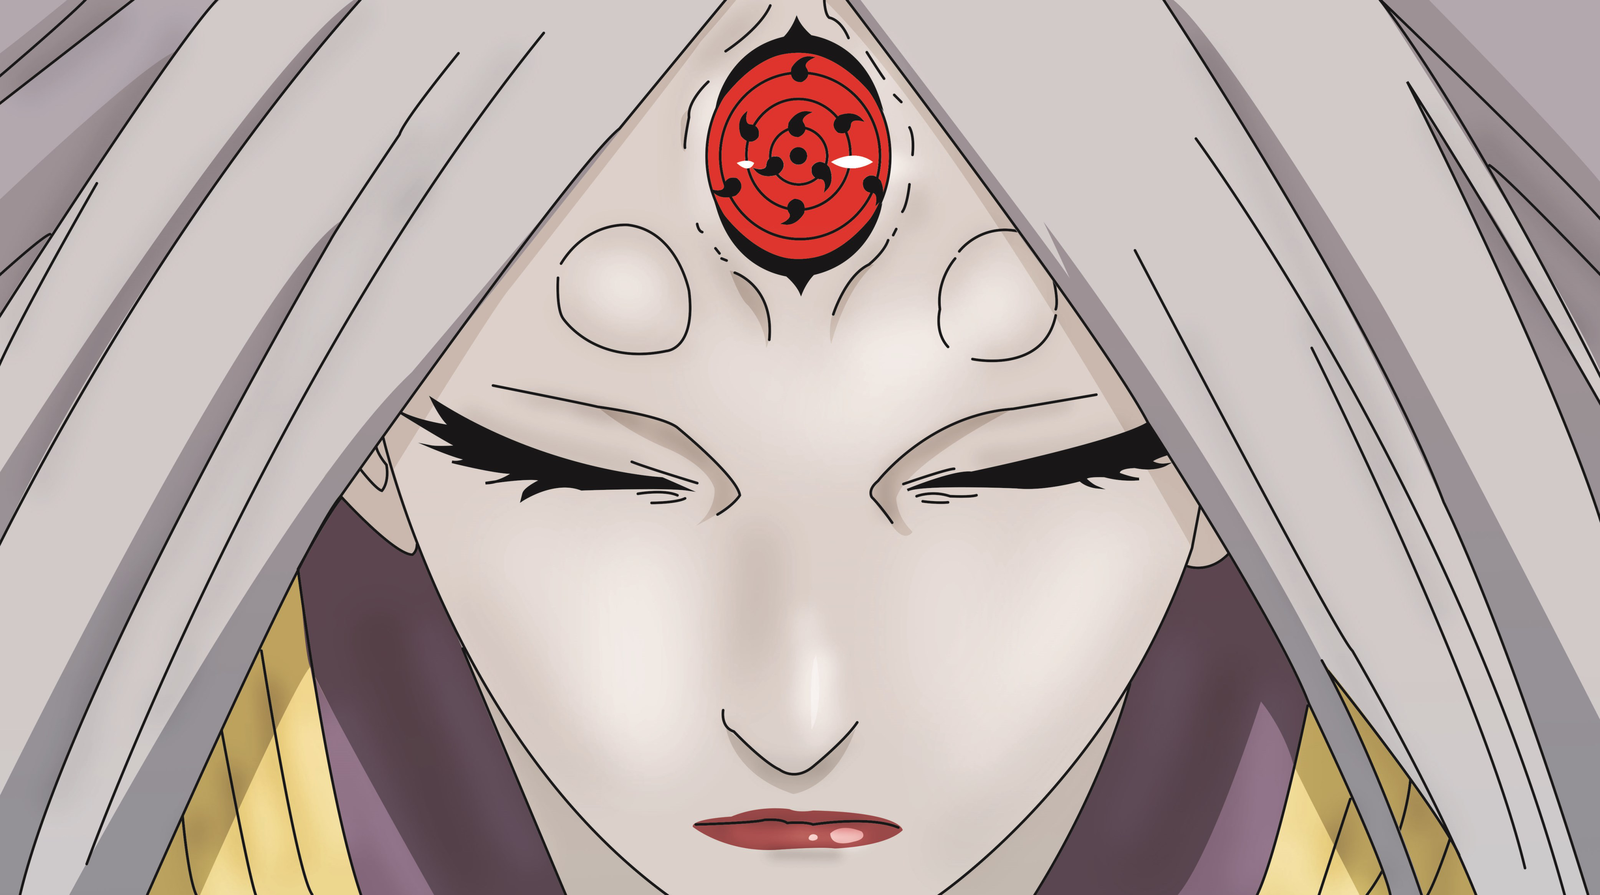 What's the genjutsu that you can do if you posses the Rinne-Sharingan?